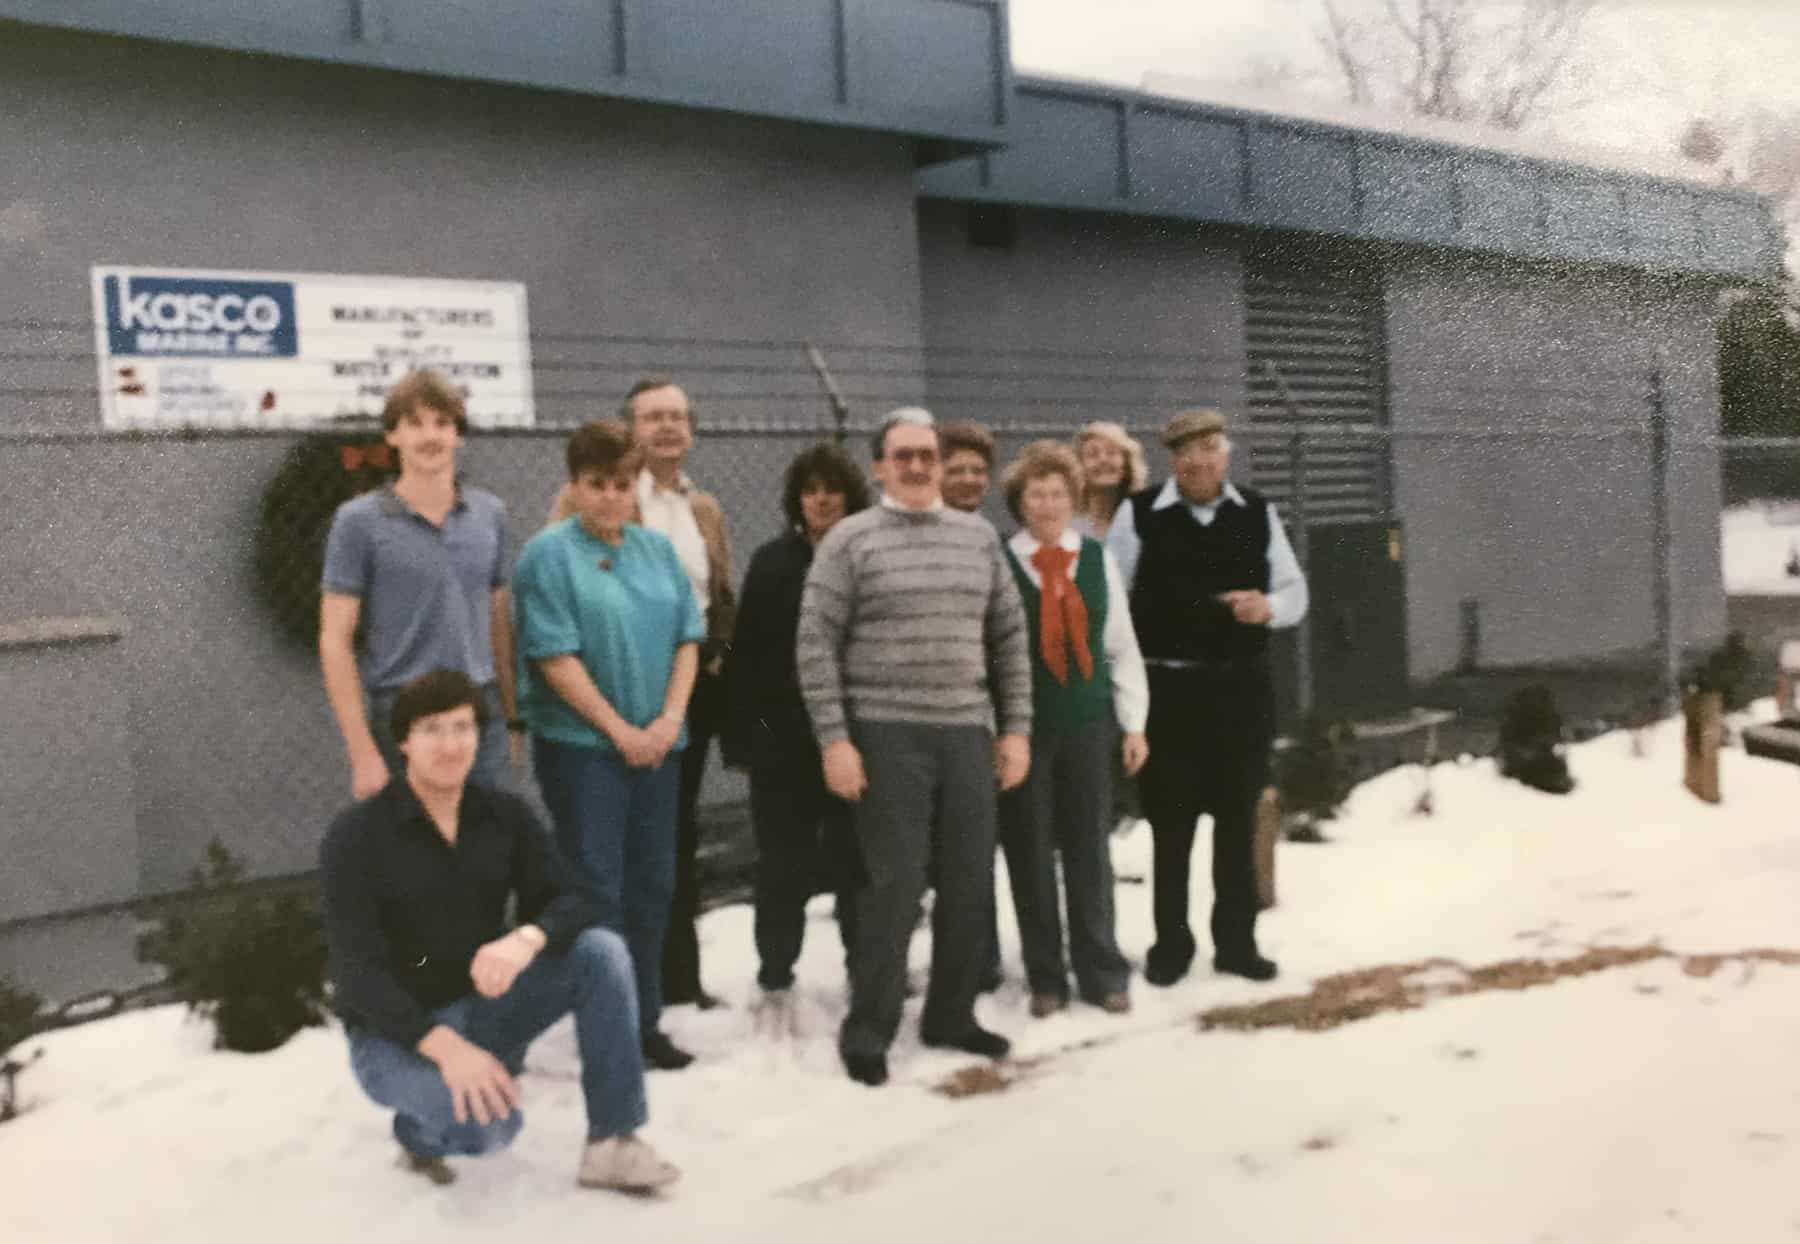 The Kasco team in 1988